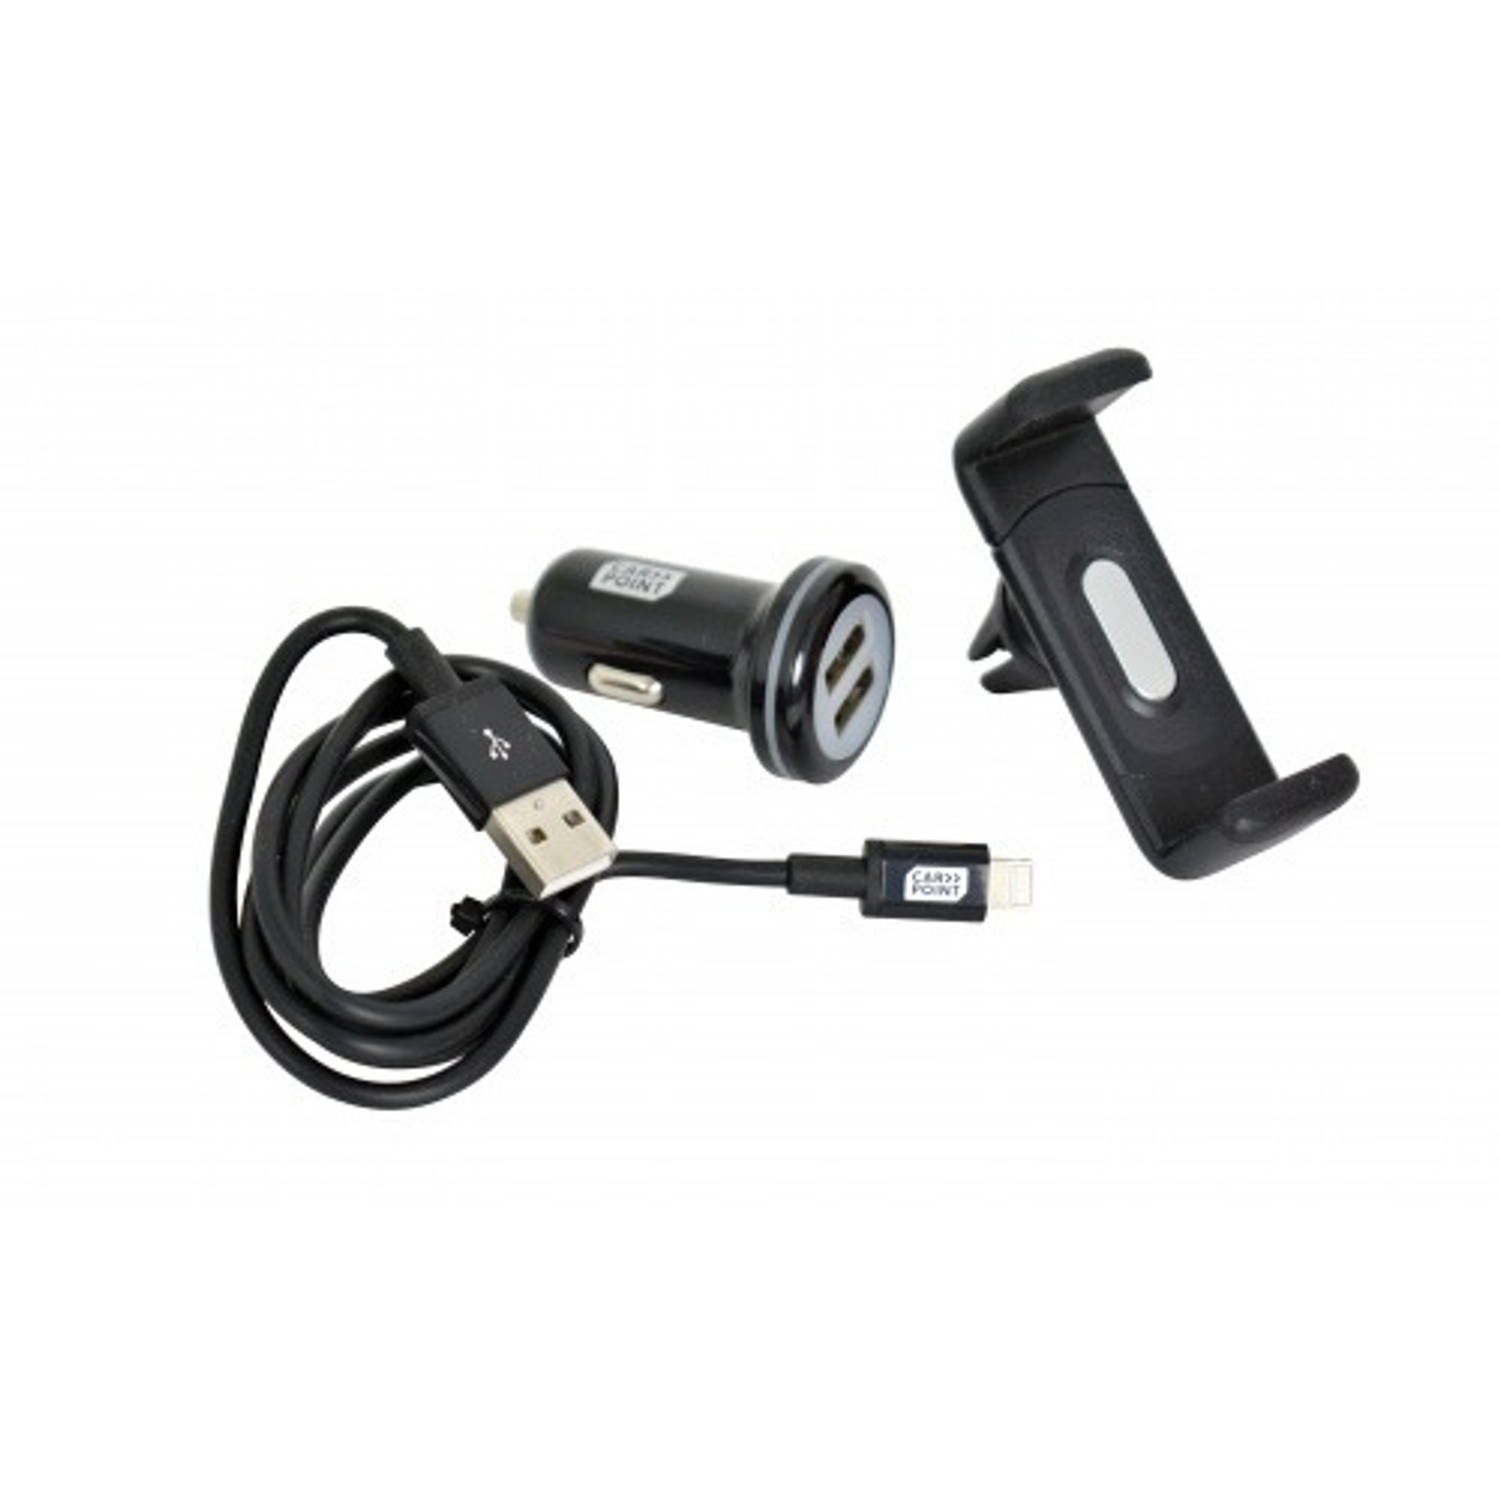 Carpoint Laderset 3 in 1 USB